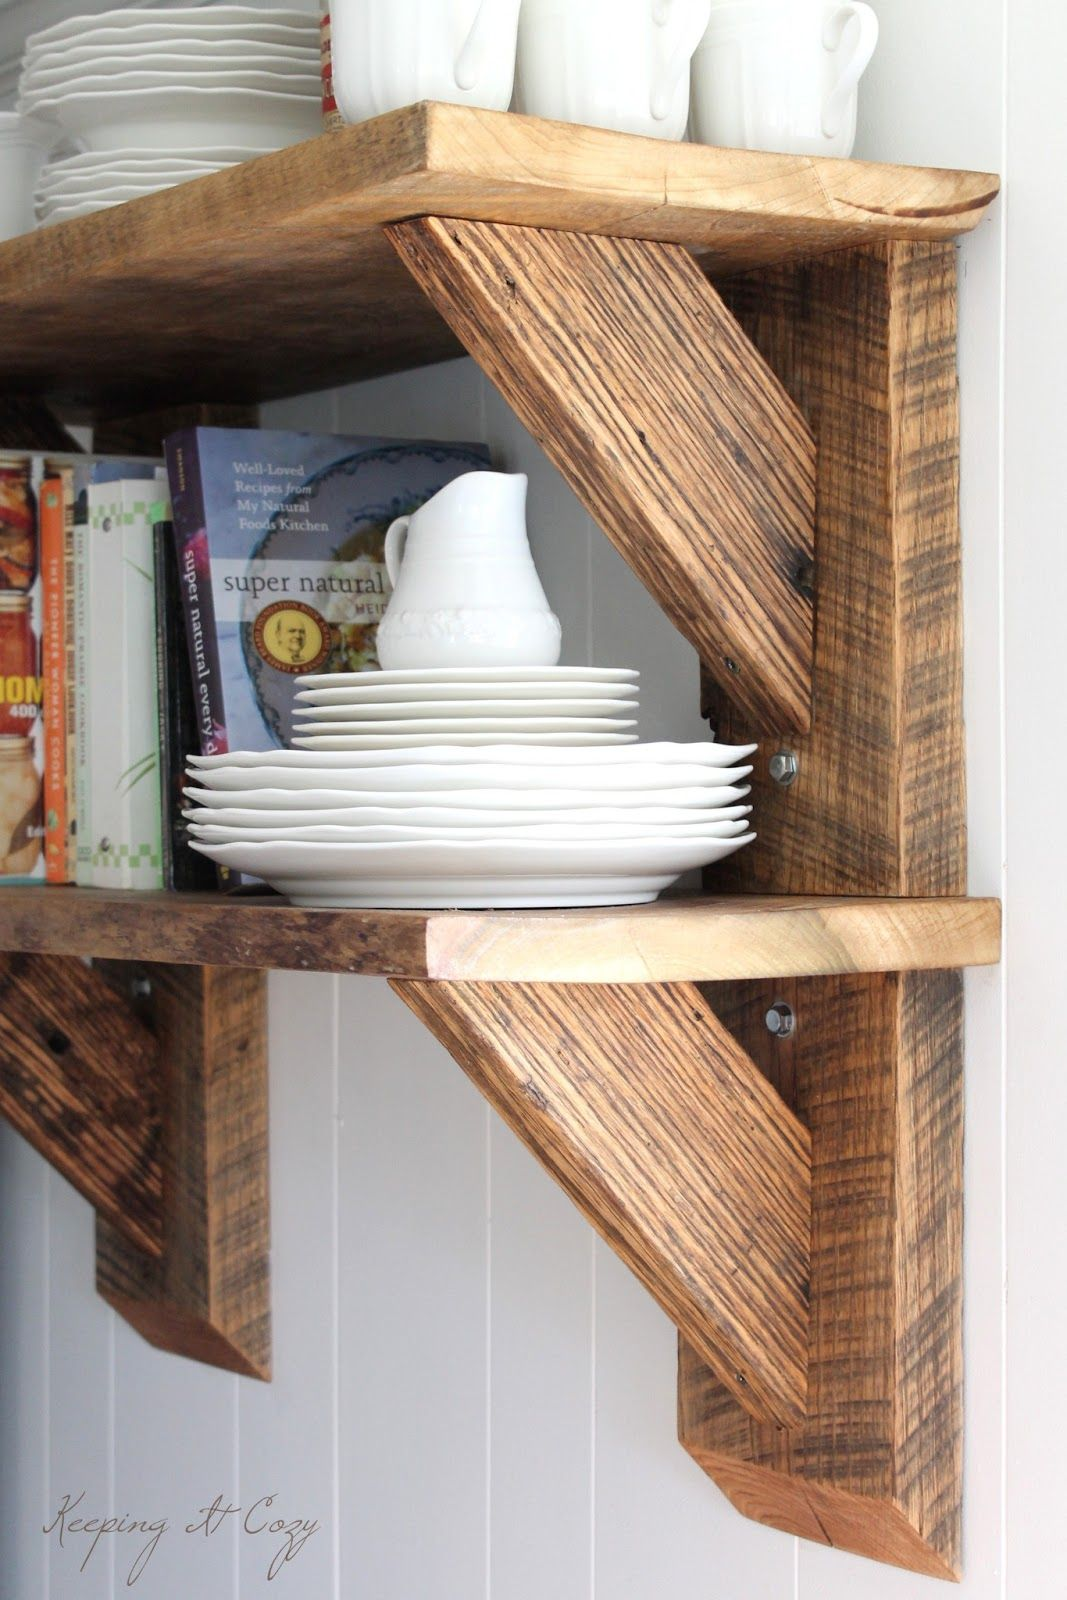 Wood Shelves For Kitchen   The Dark Streaks Visible In The Wood Are A  Result Of